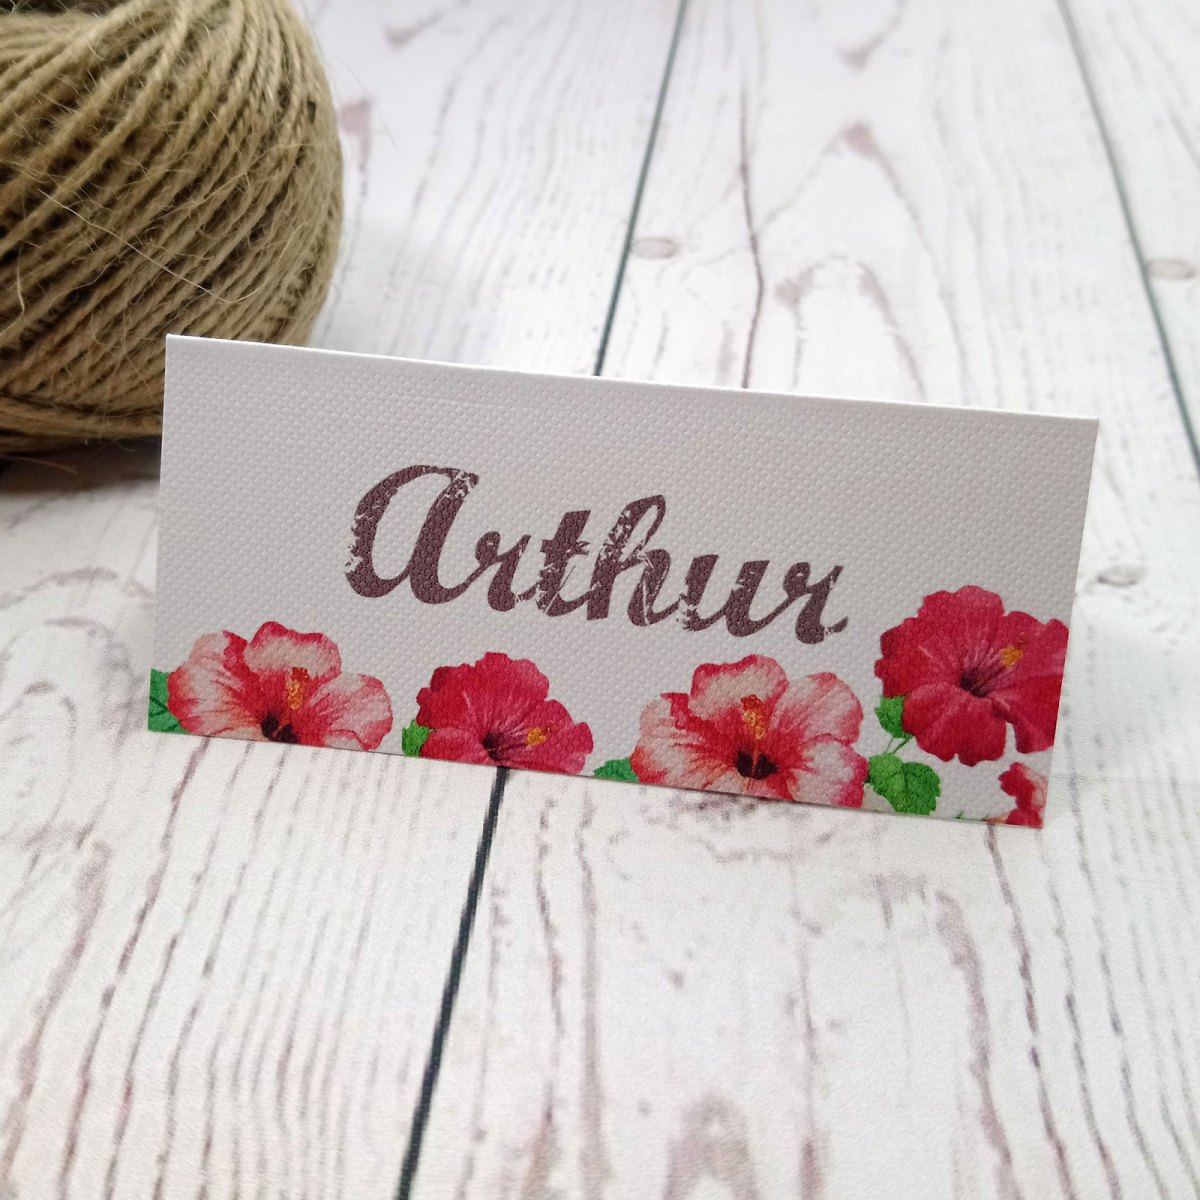 Watercolour Flowers Folded Place Card standing up on the table